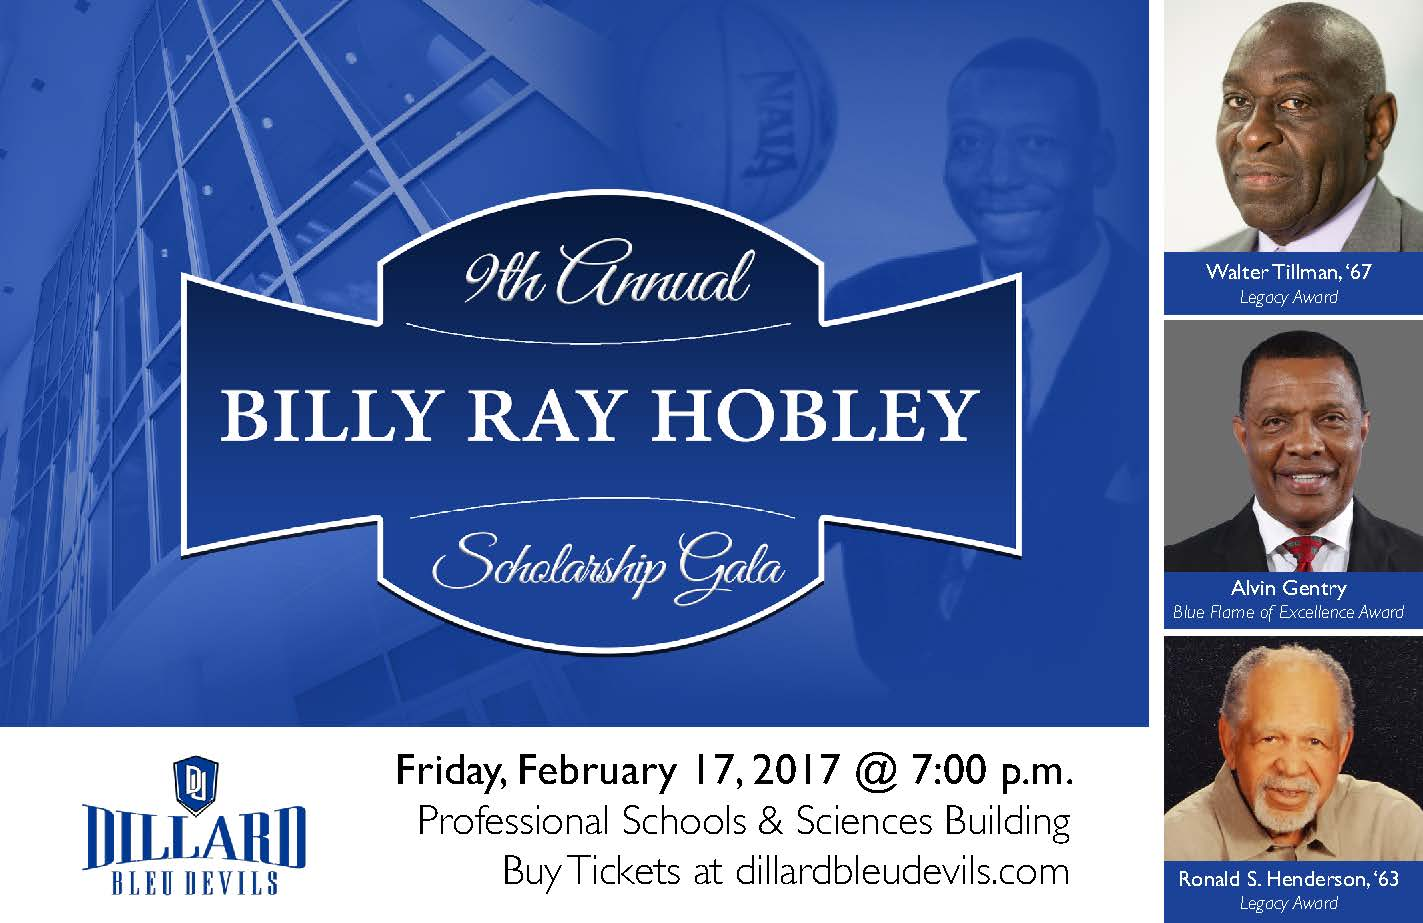 9th Annual Billy Ray Hobley Scholarship Gala large image